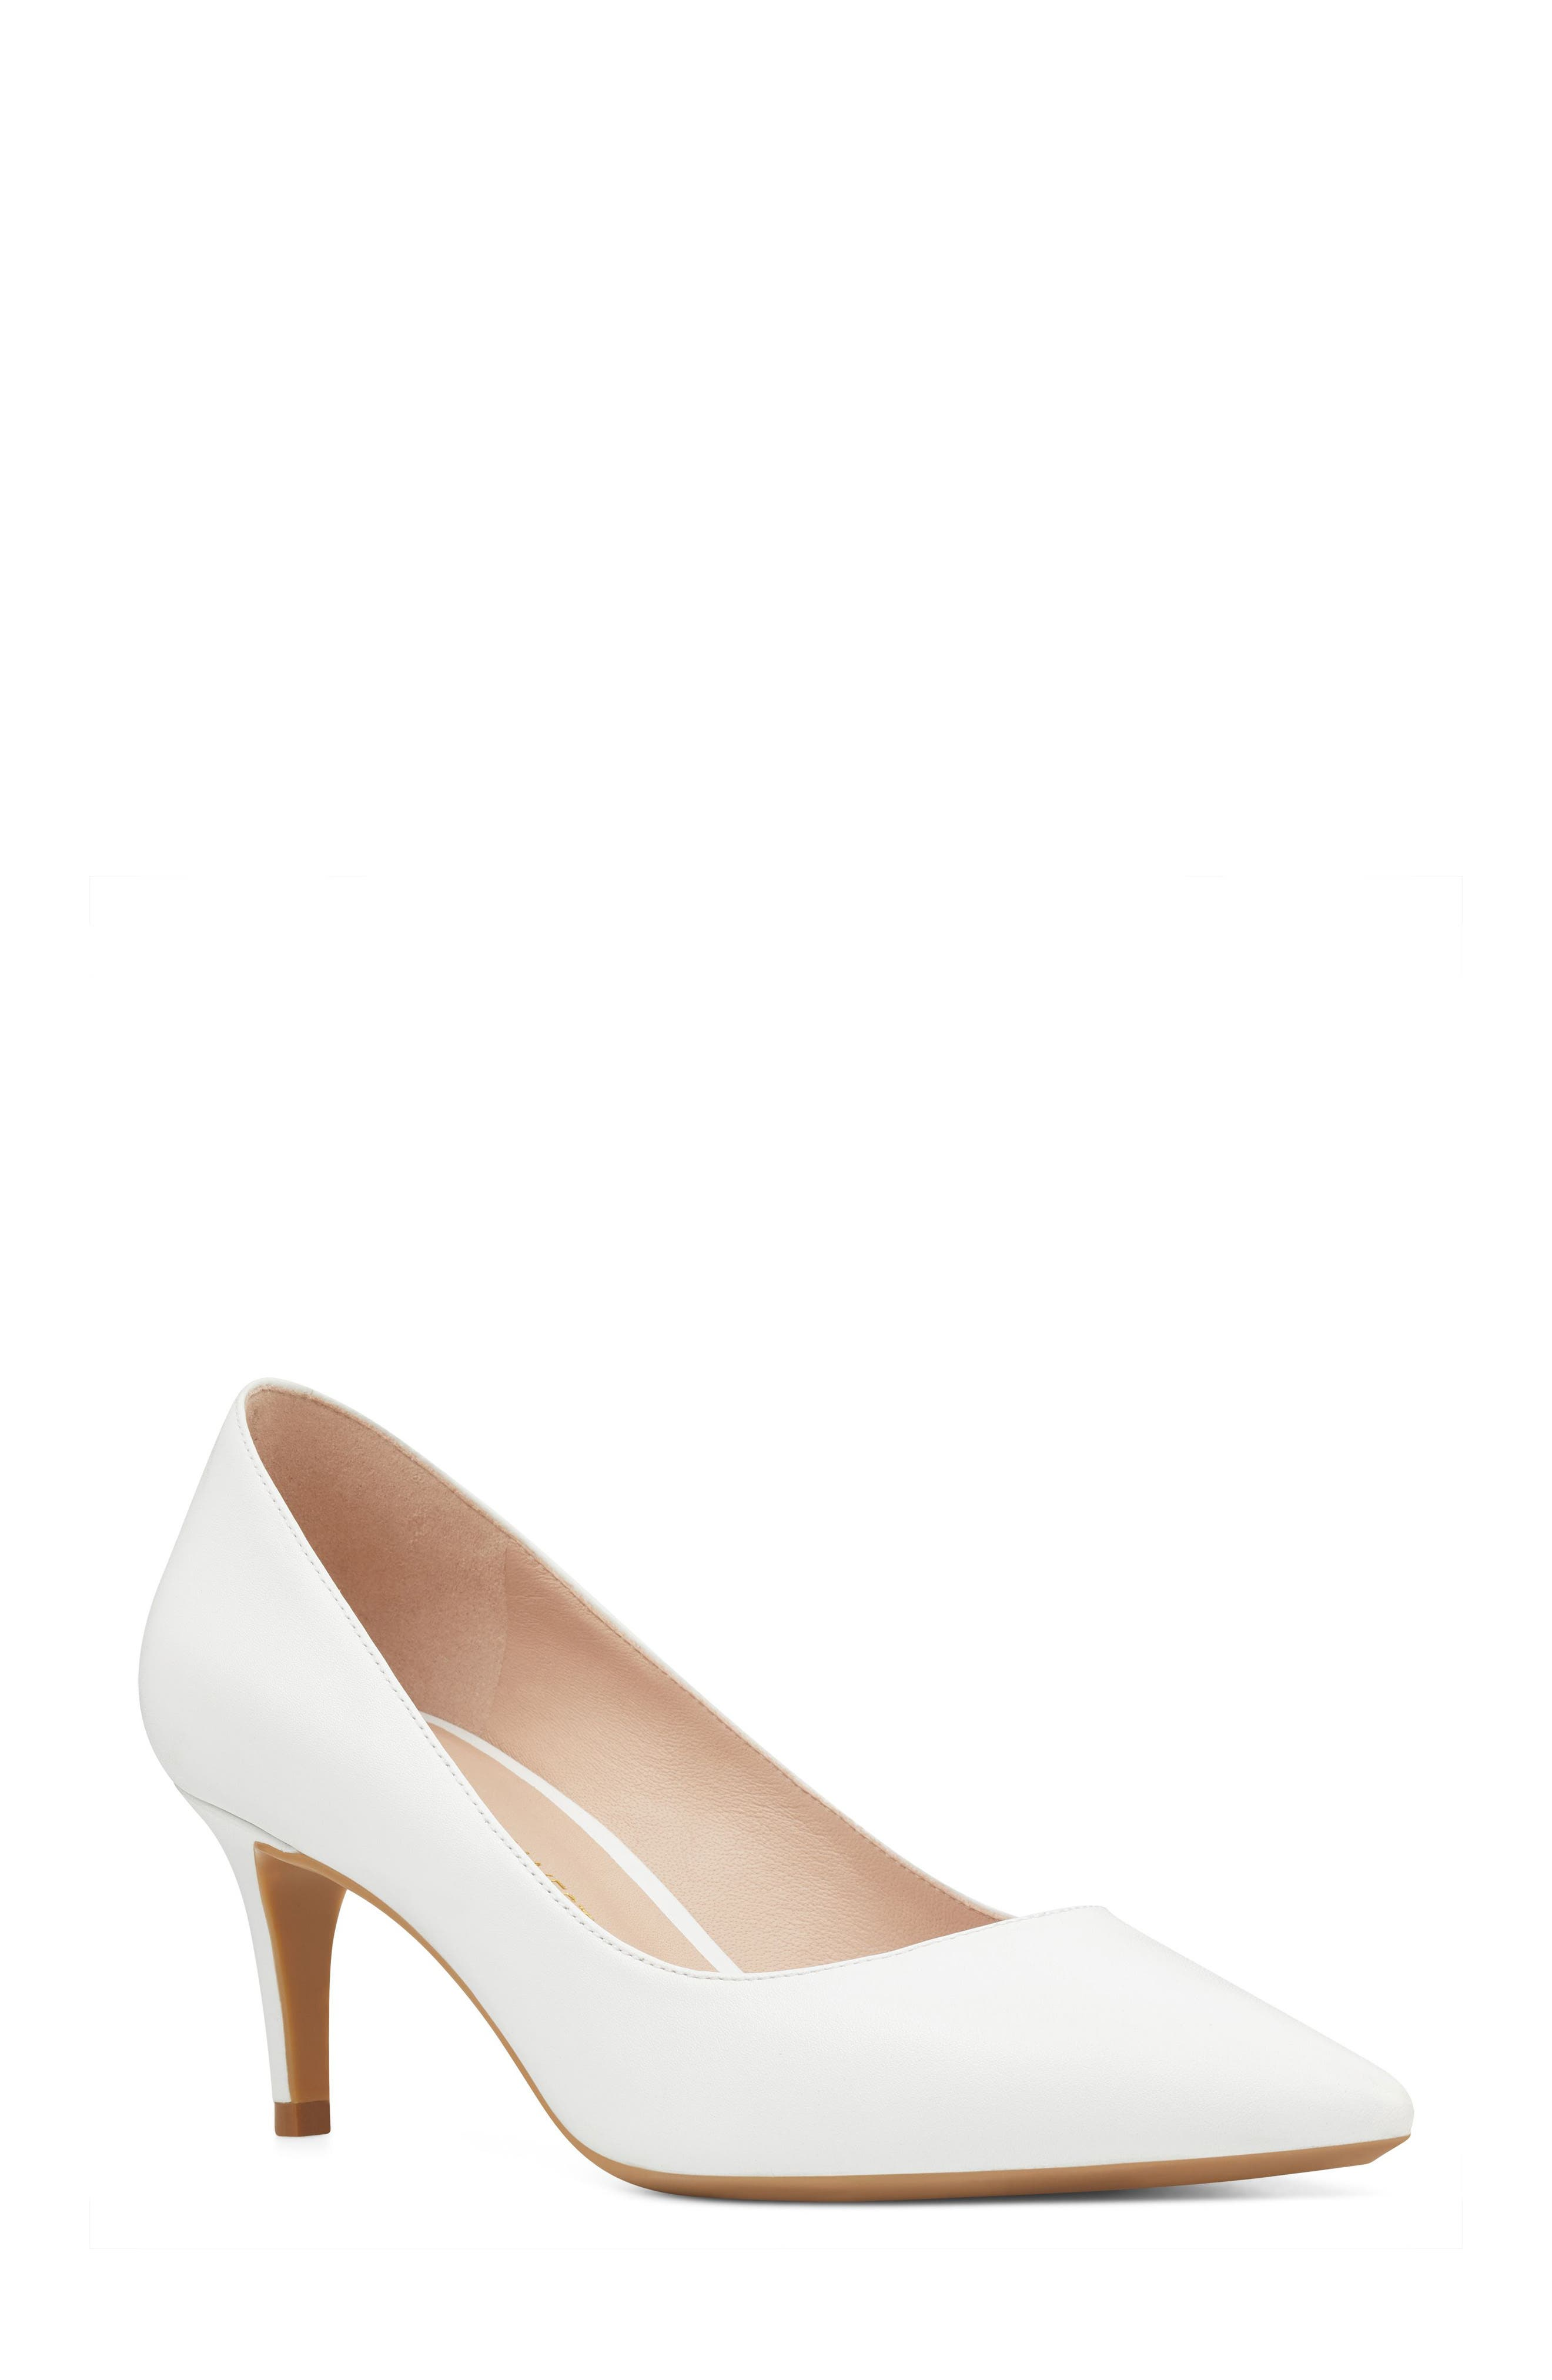 Soho Pointy Toe Pump,                             Main thumbnail 1, color,                             100